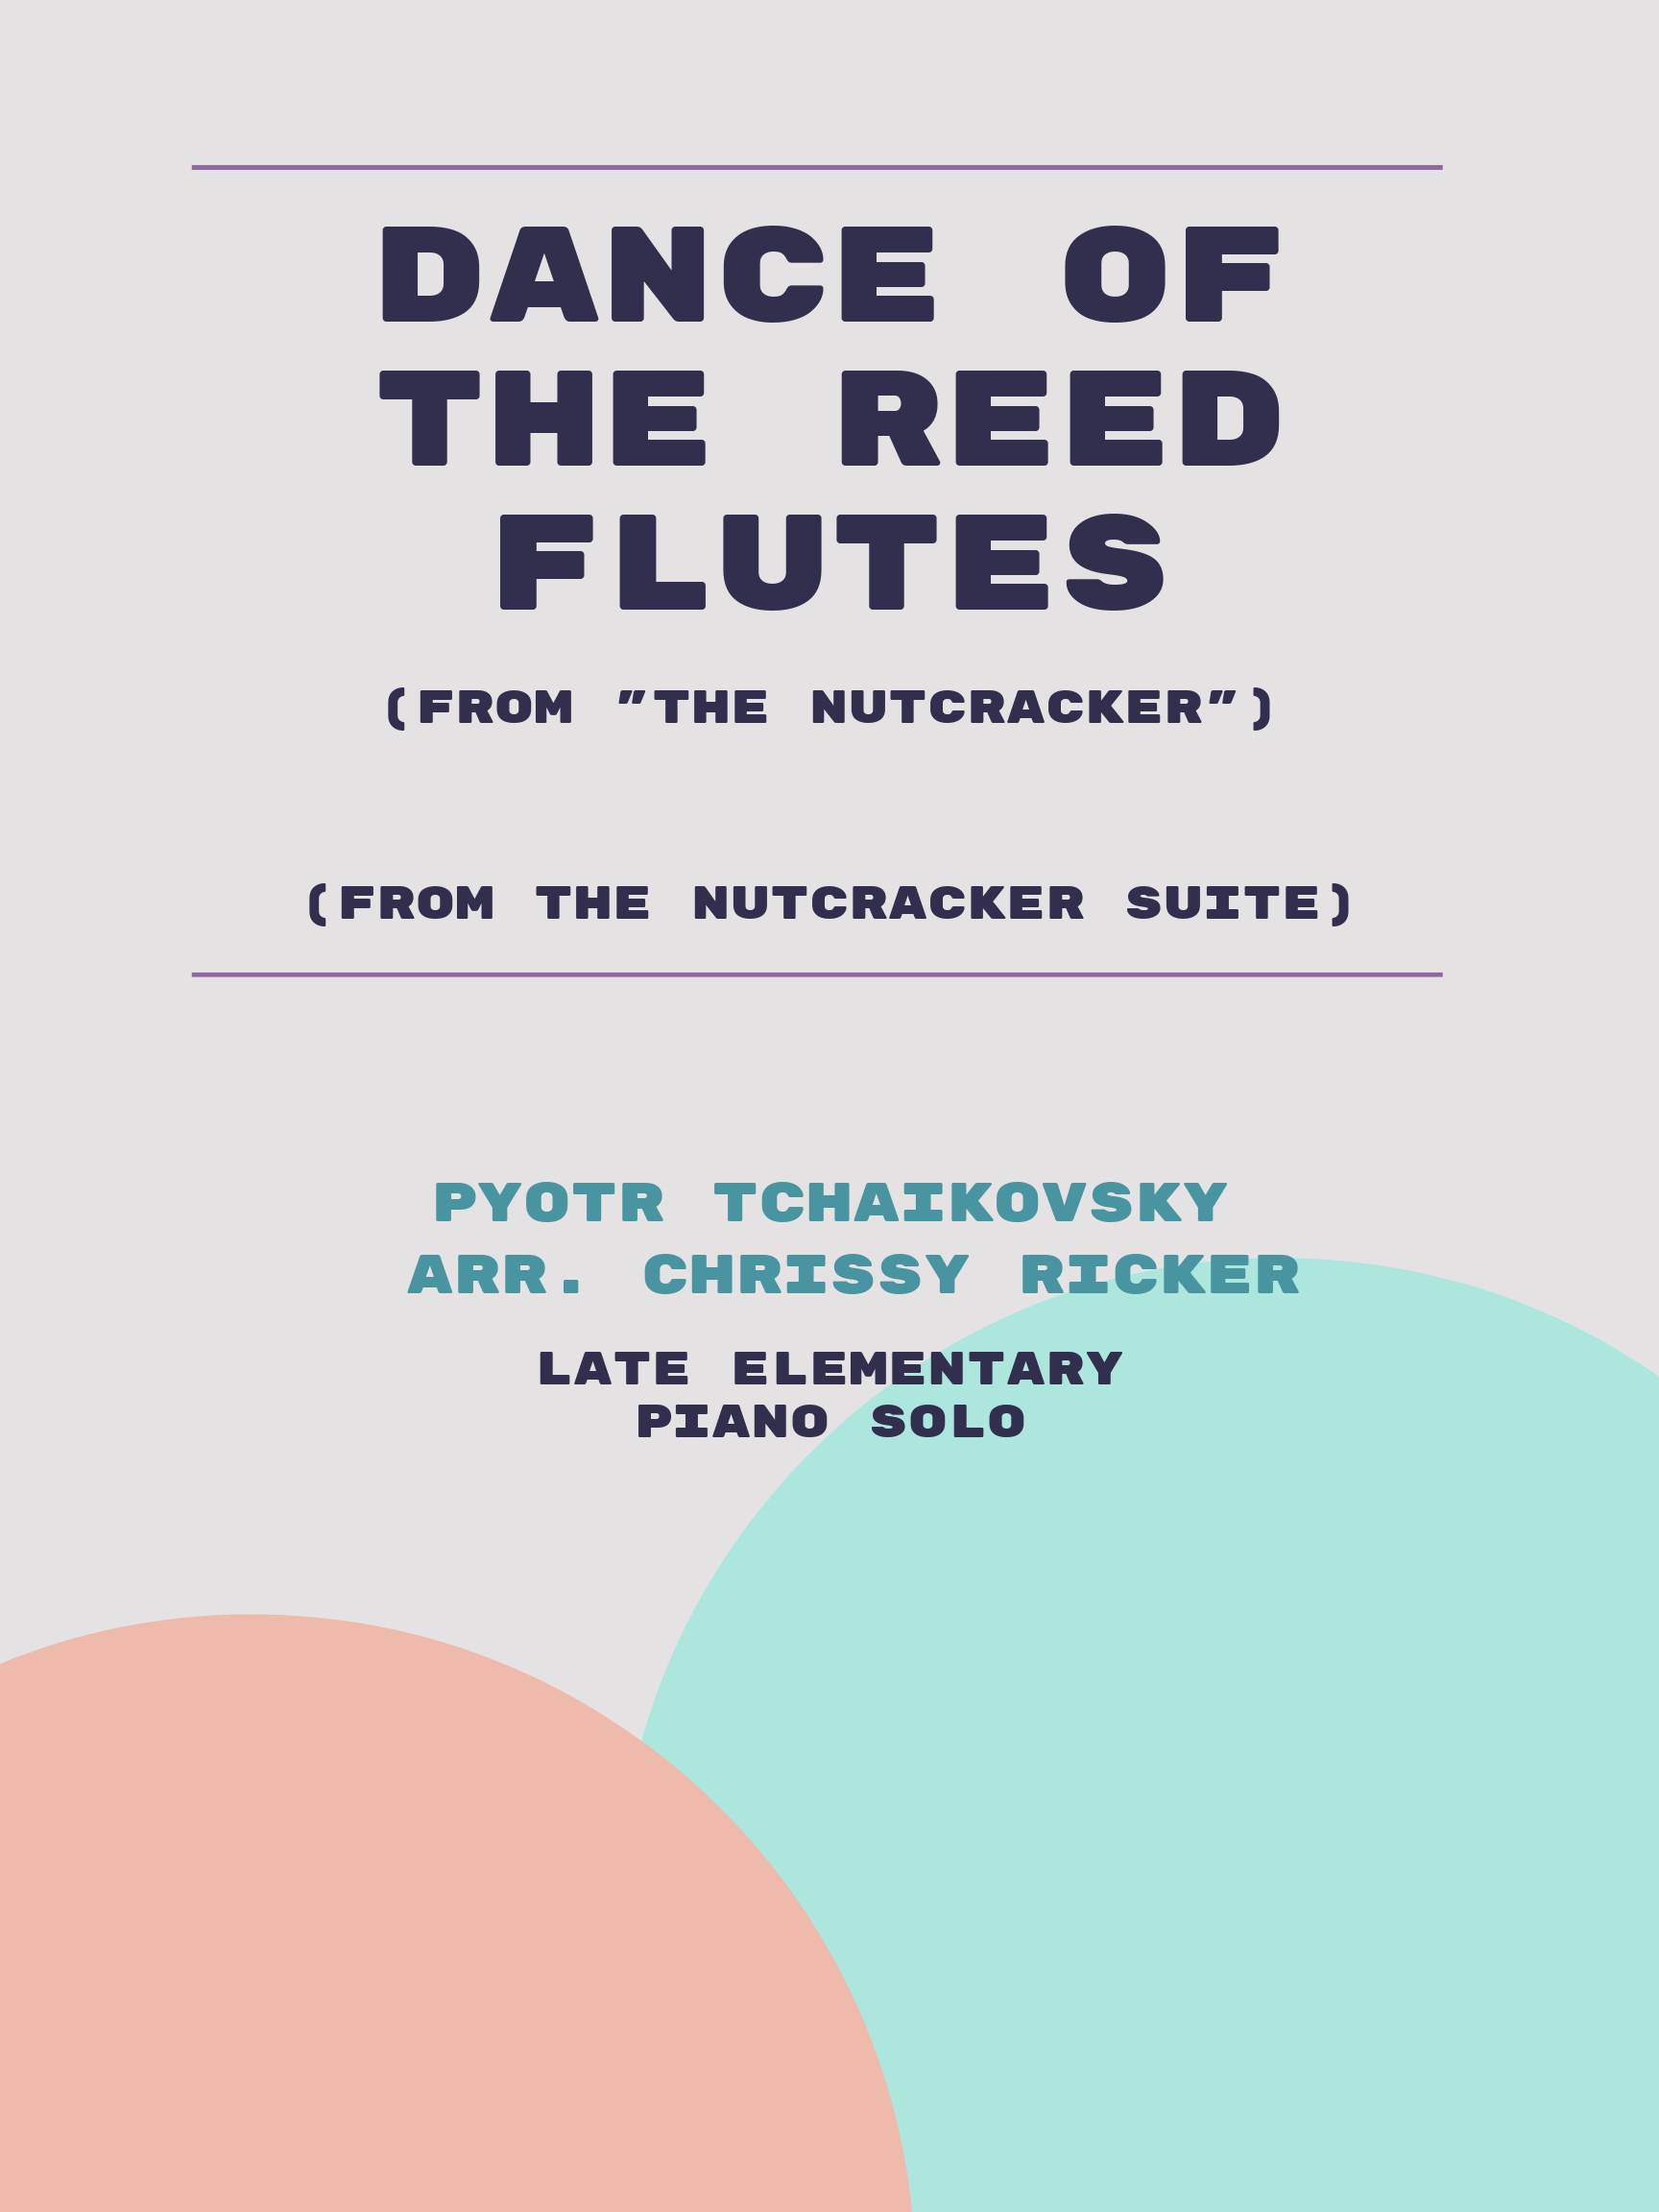 Dance of the Reed Flutes by Pyotr Tchaikovsky